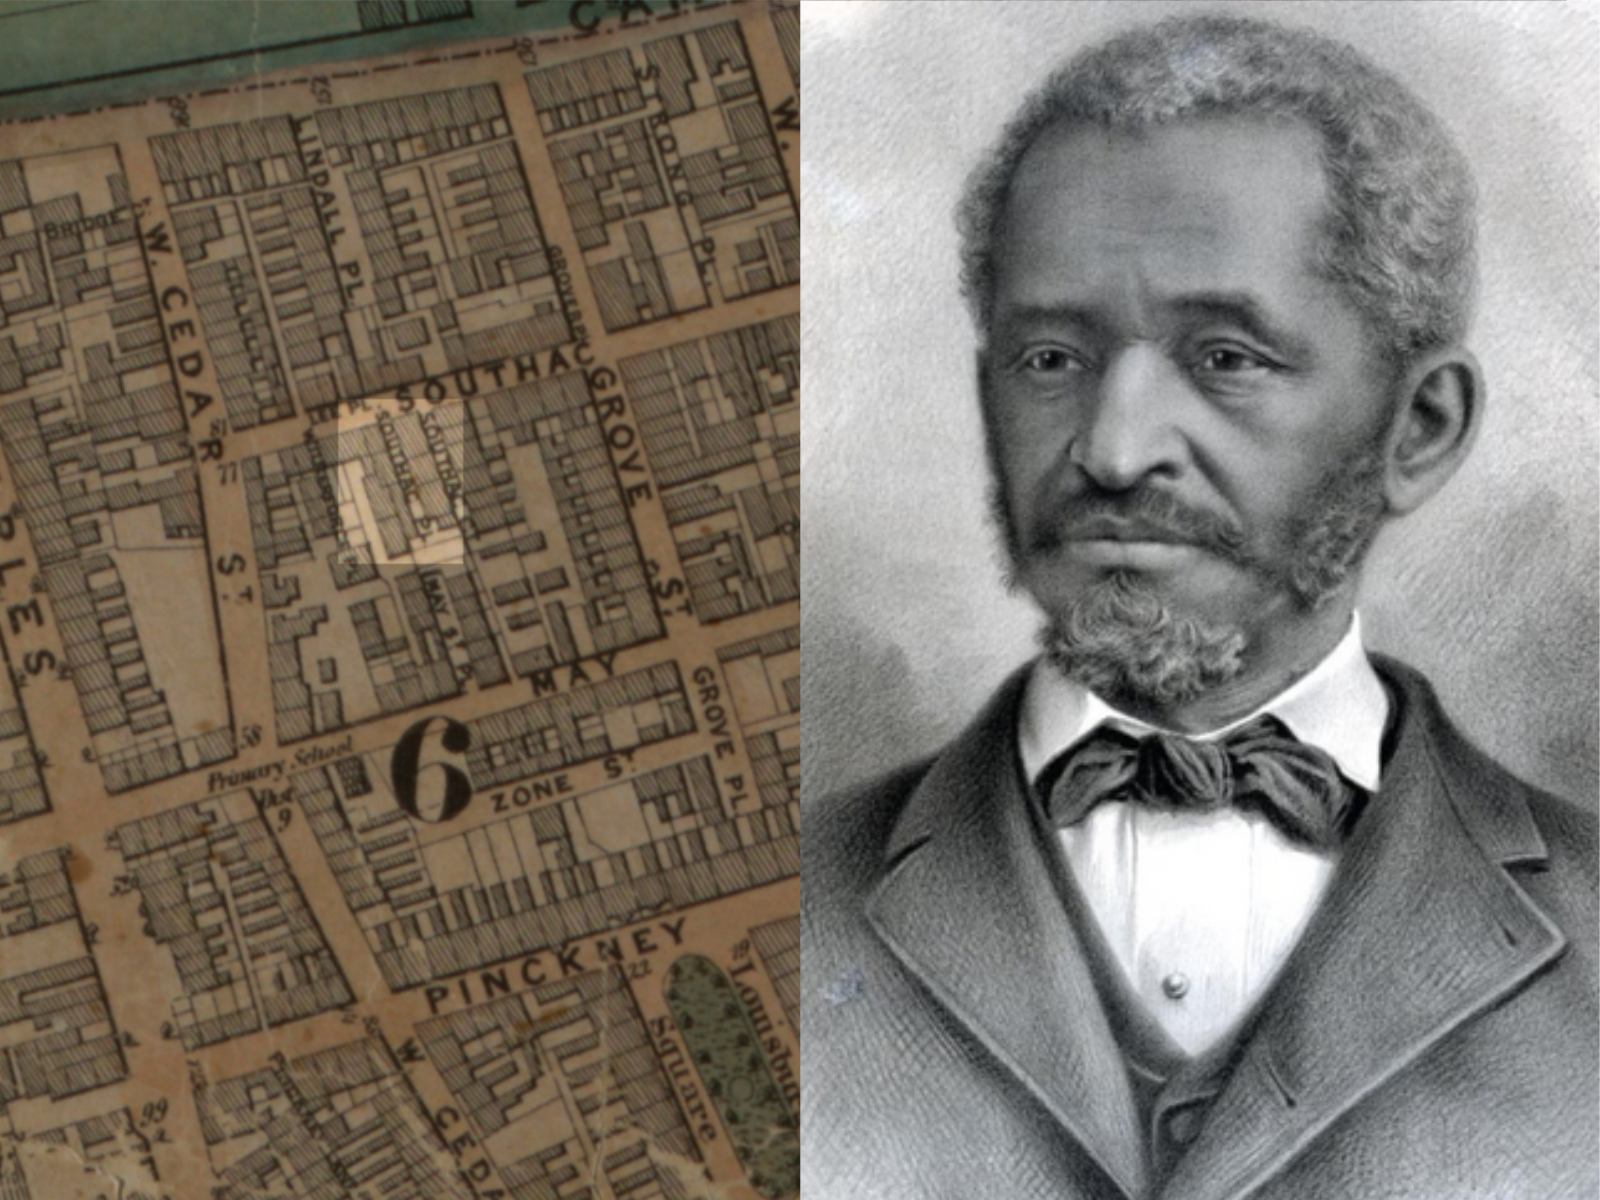 Lewis Hayden (right) took Shadrach Minkins to a safe house on Southac Place (highlighted on left) to hide.